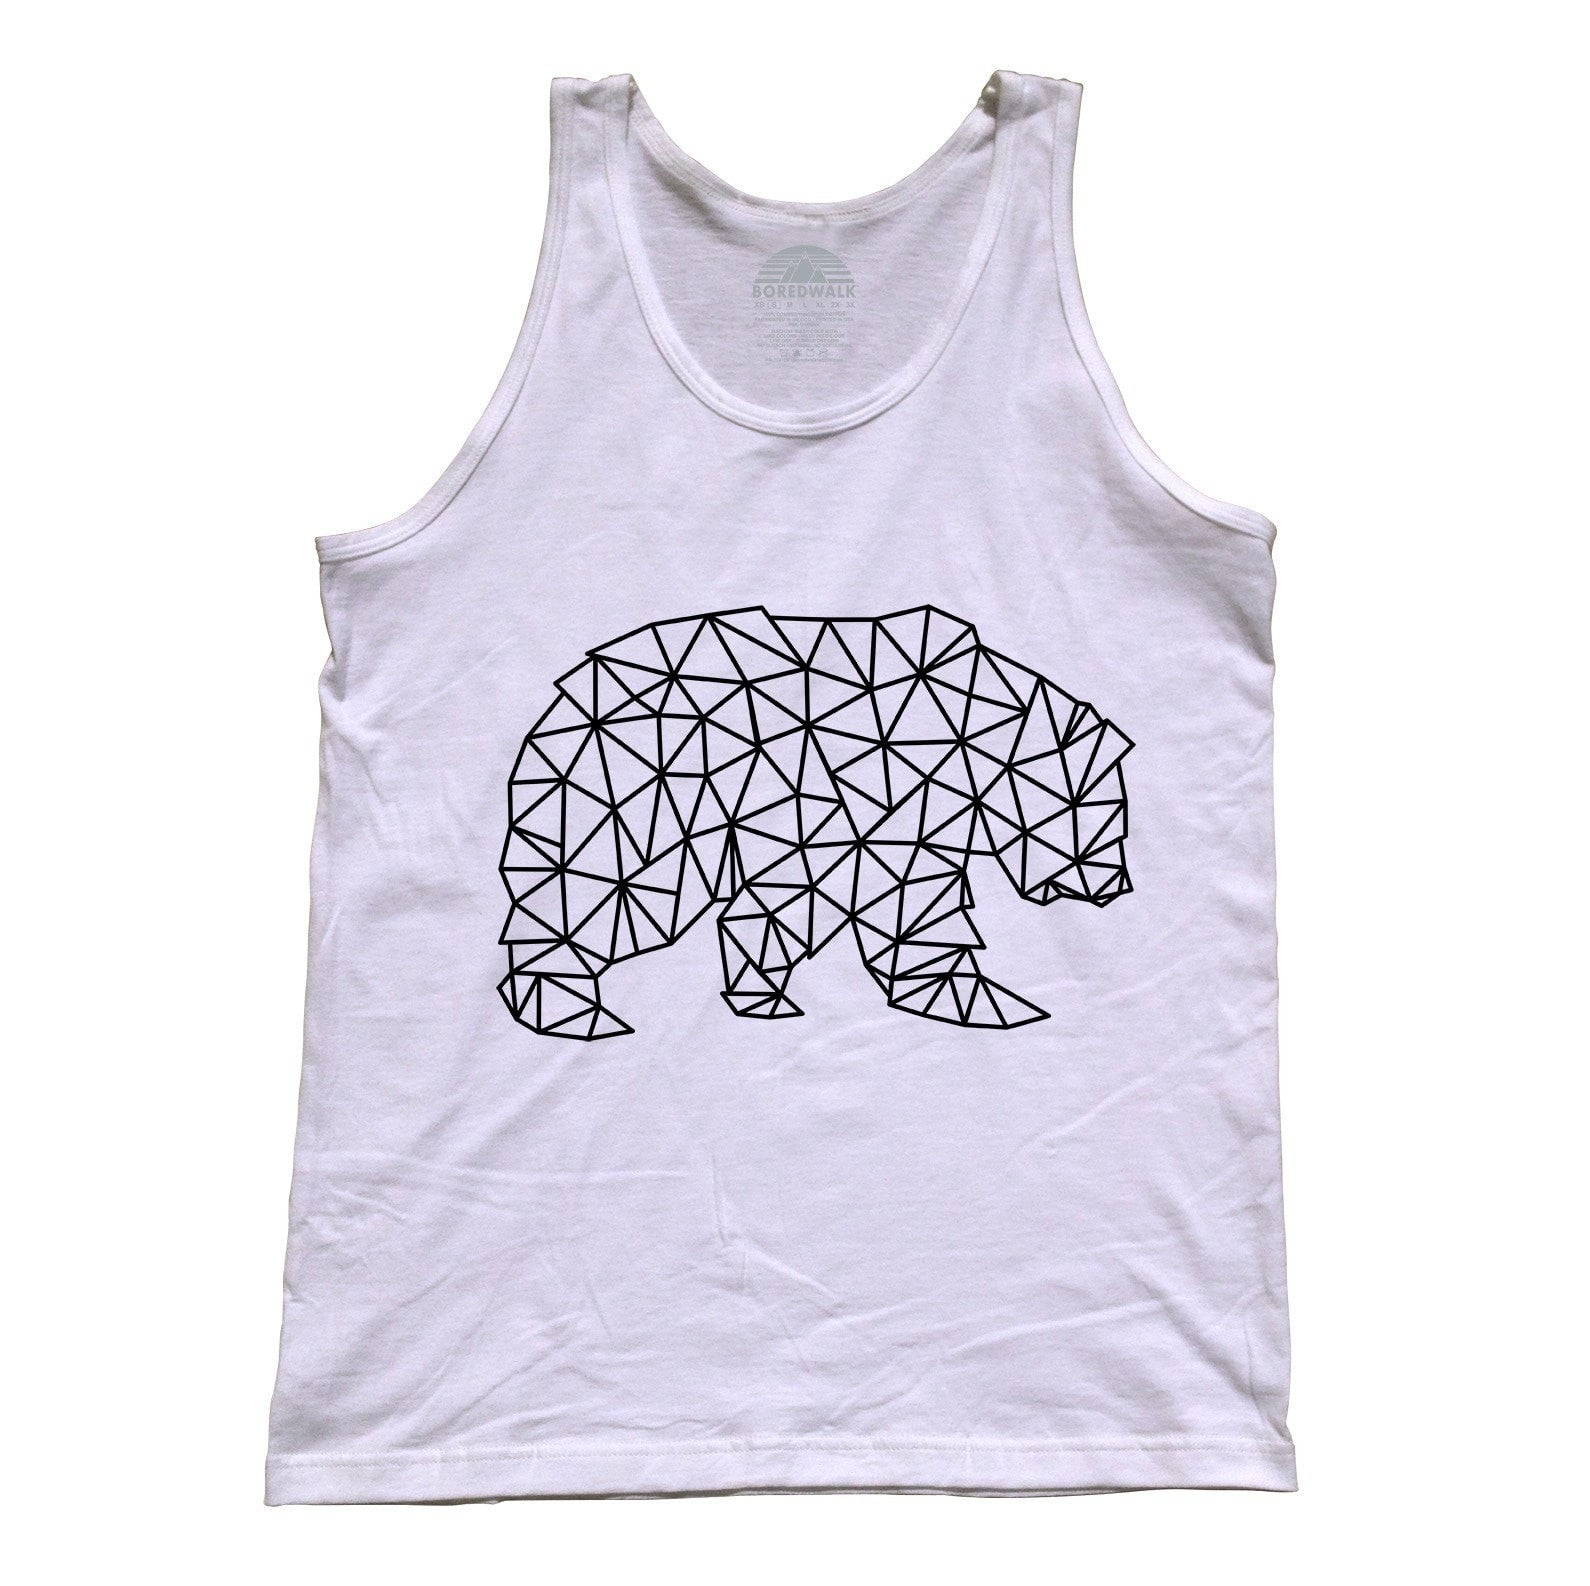 Unisex Geometric Bear Tank Top Triangles